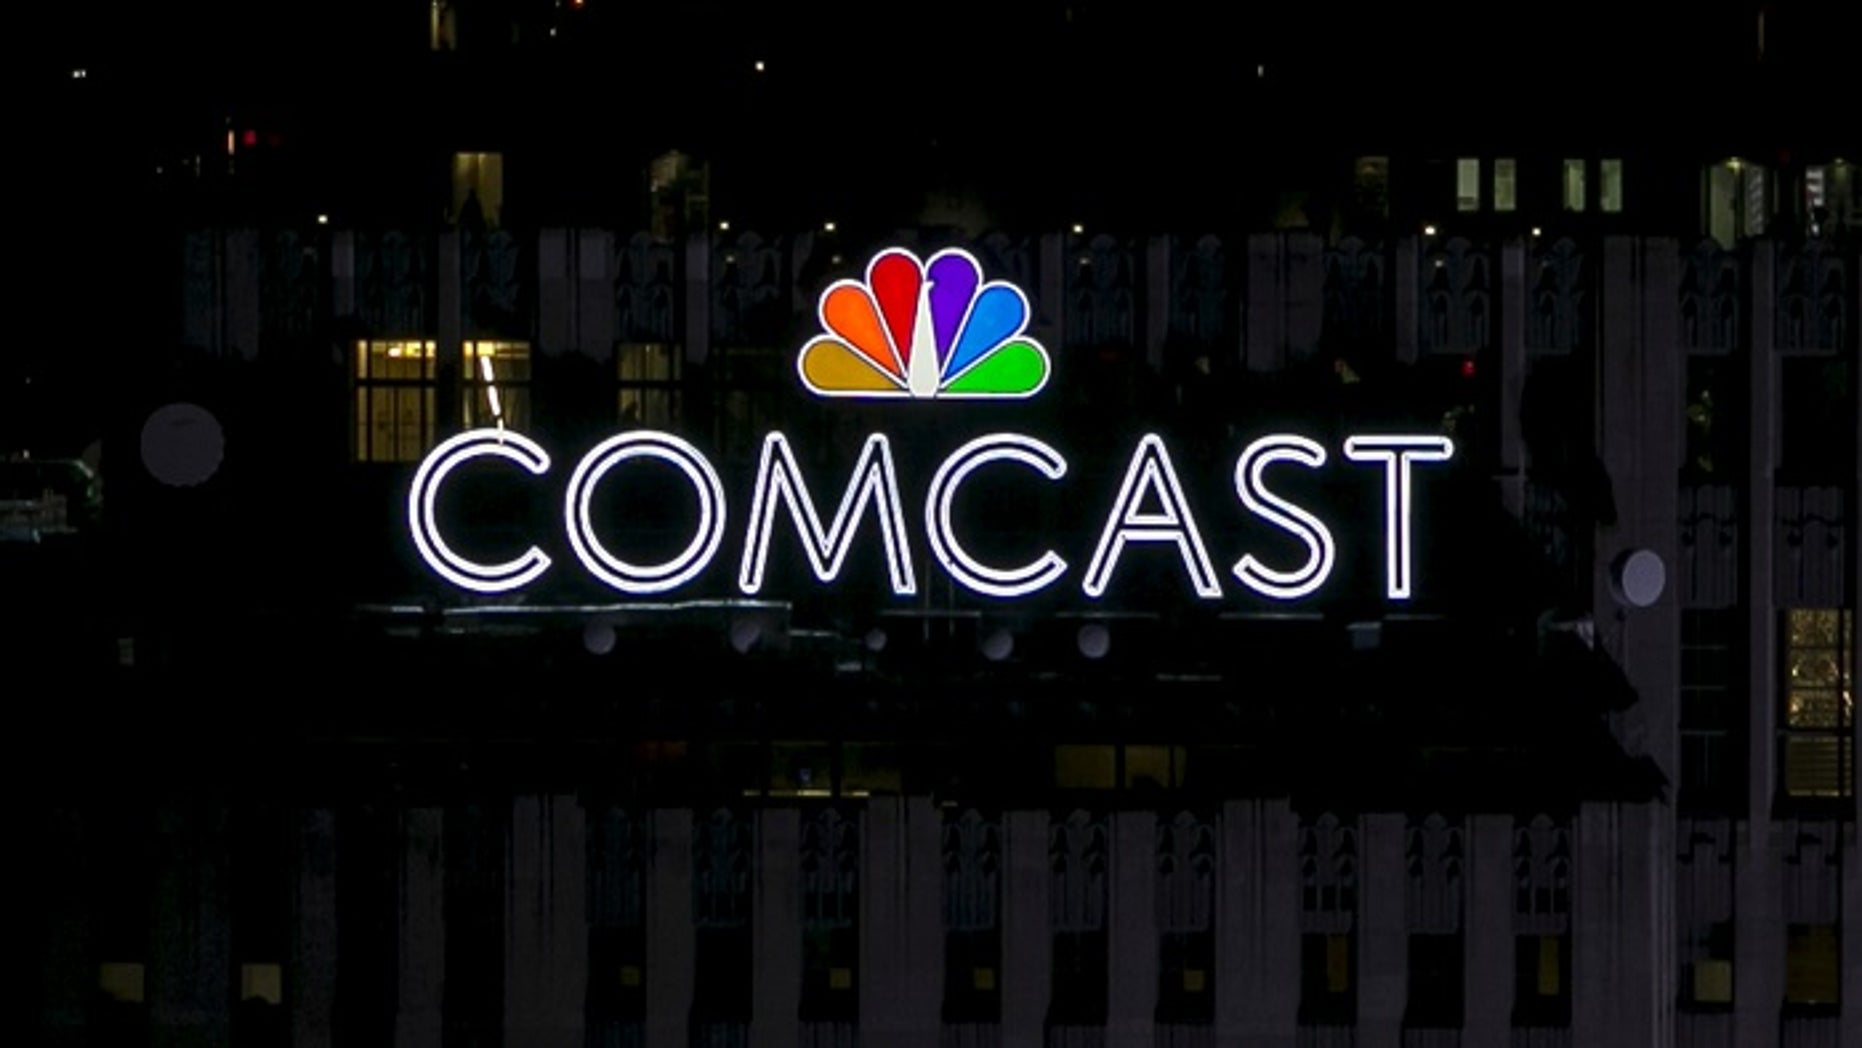 Major internet outage hits Comcast users across the US | Fox